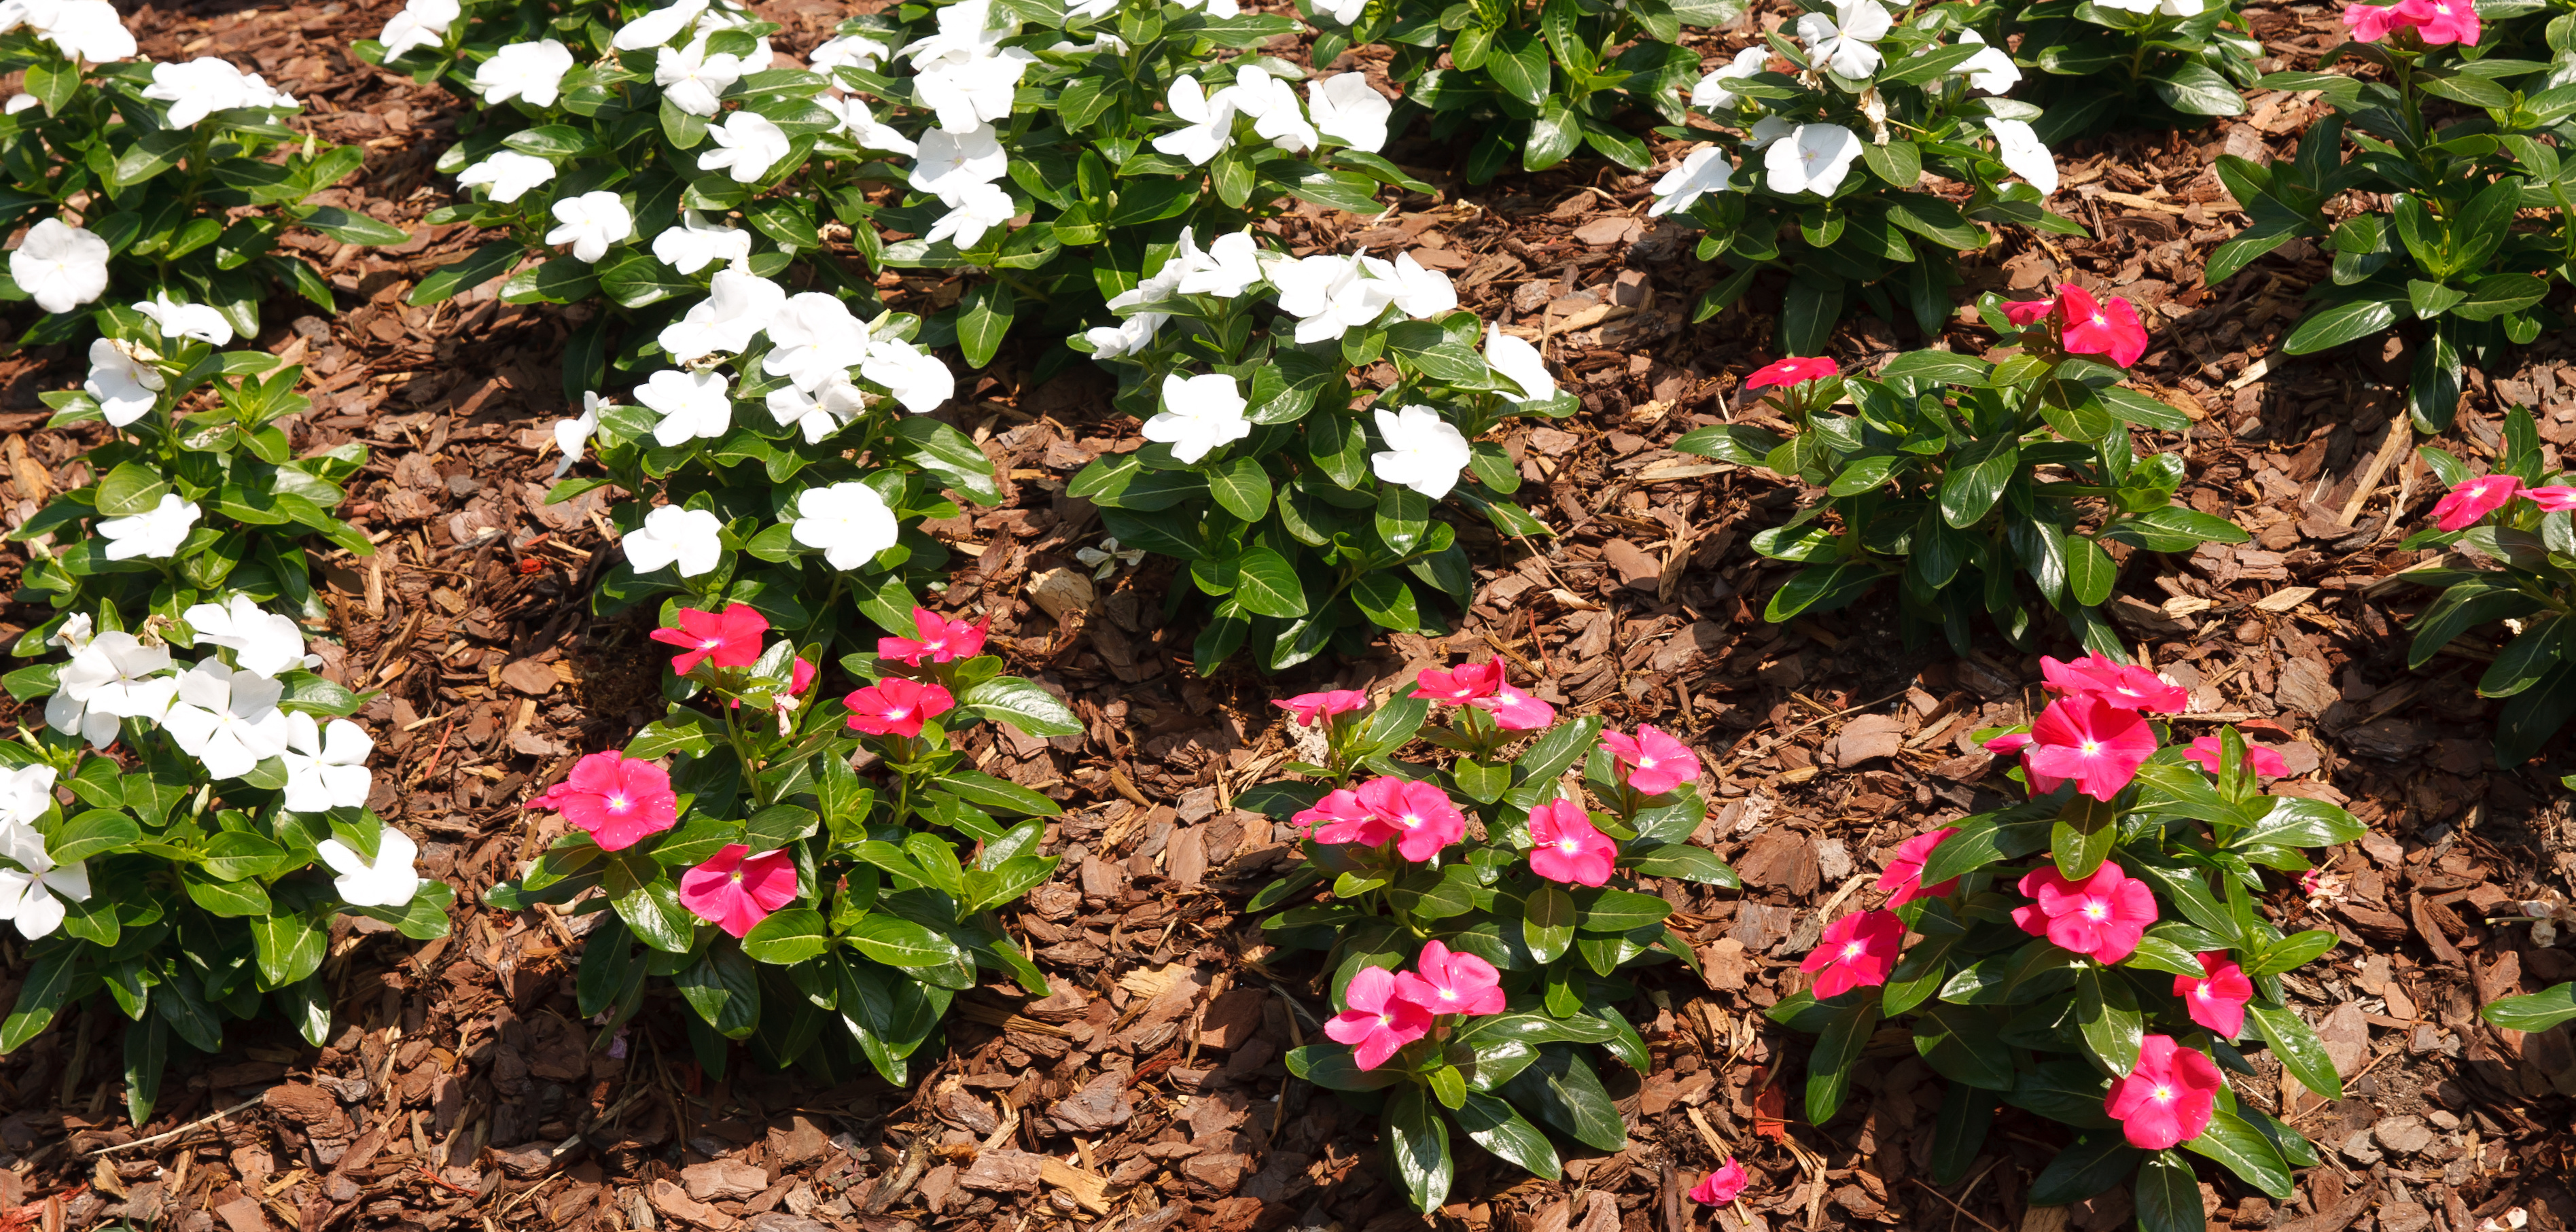 flowerbed with pink flowers and mulch